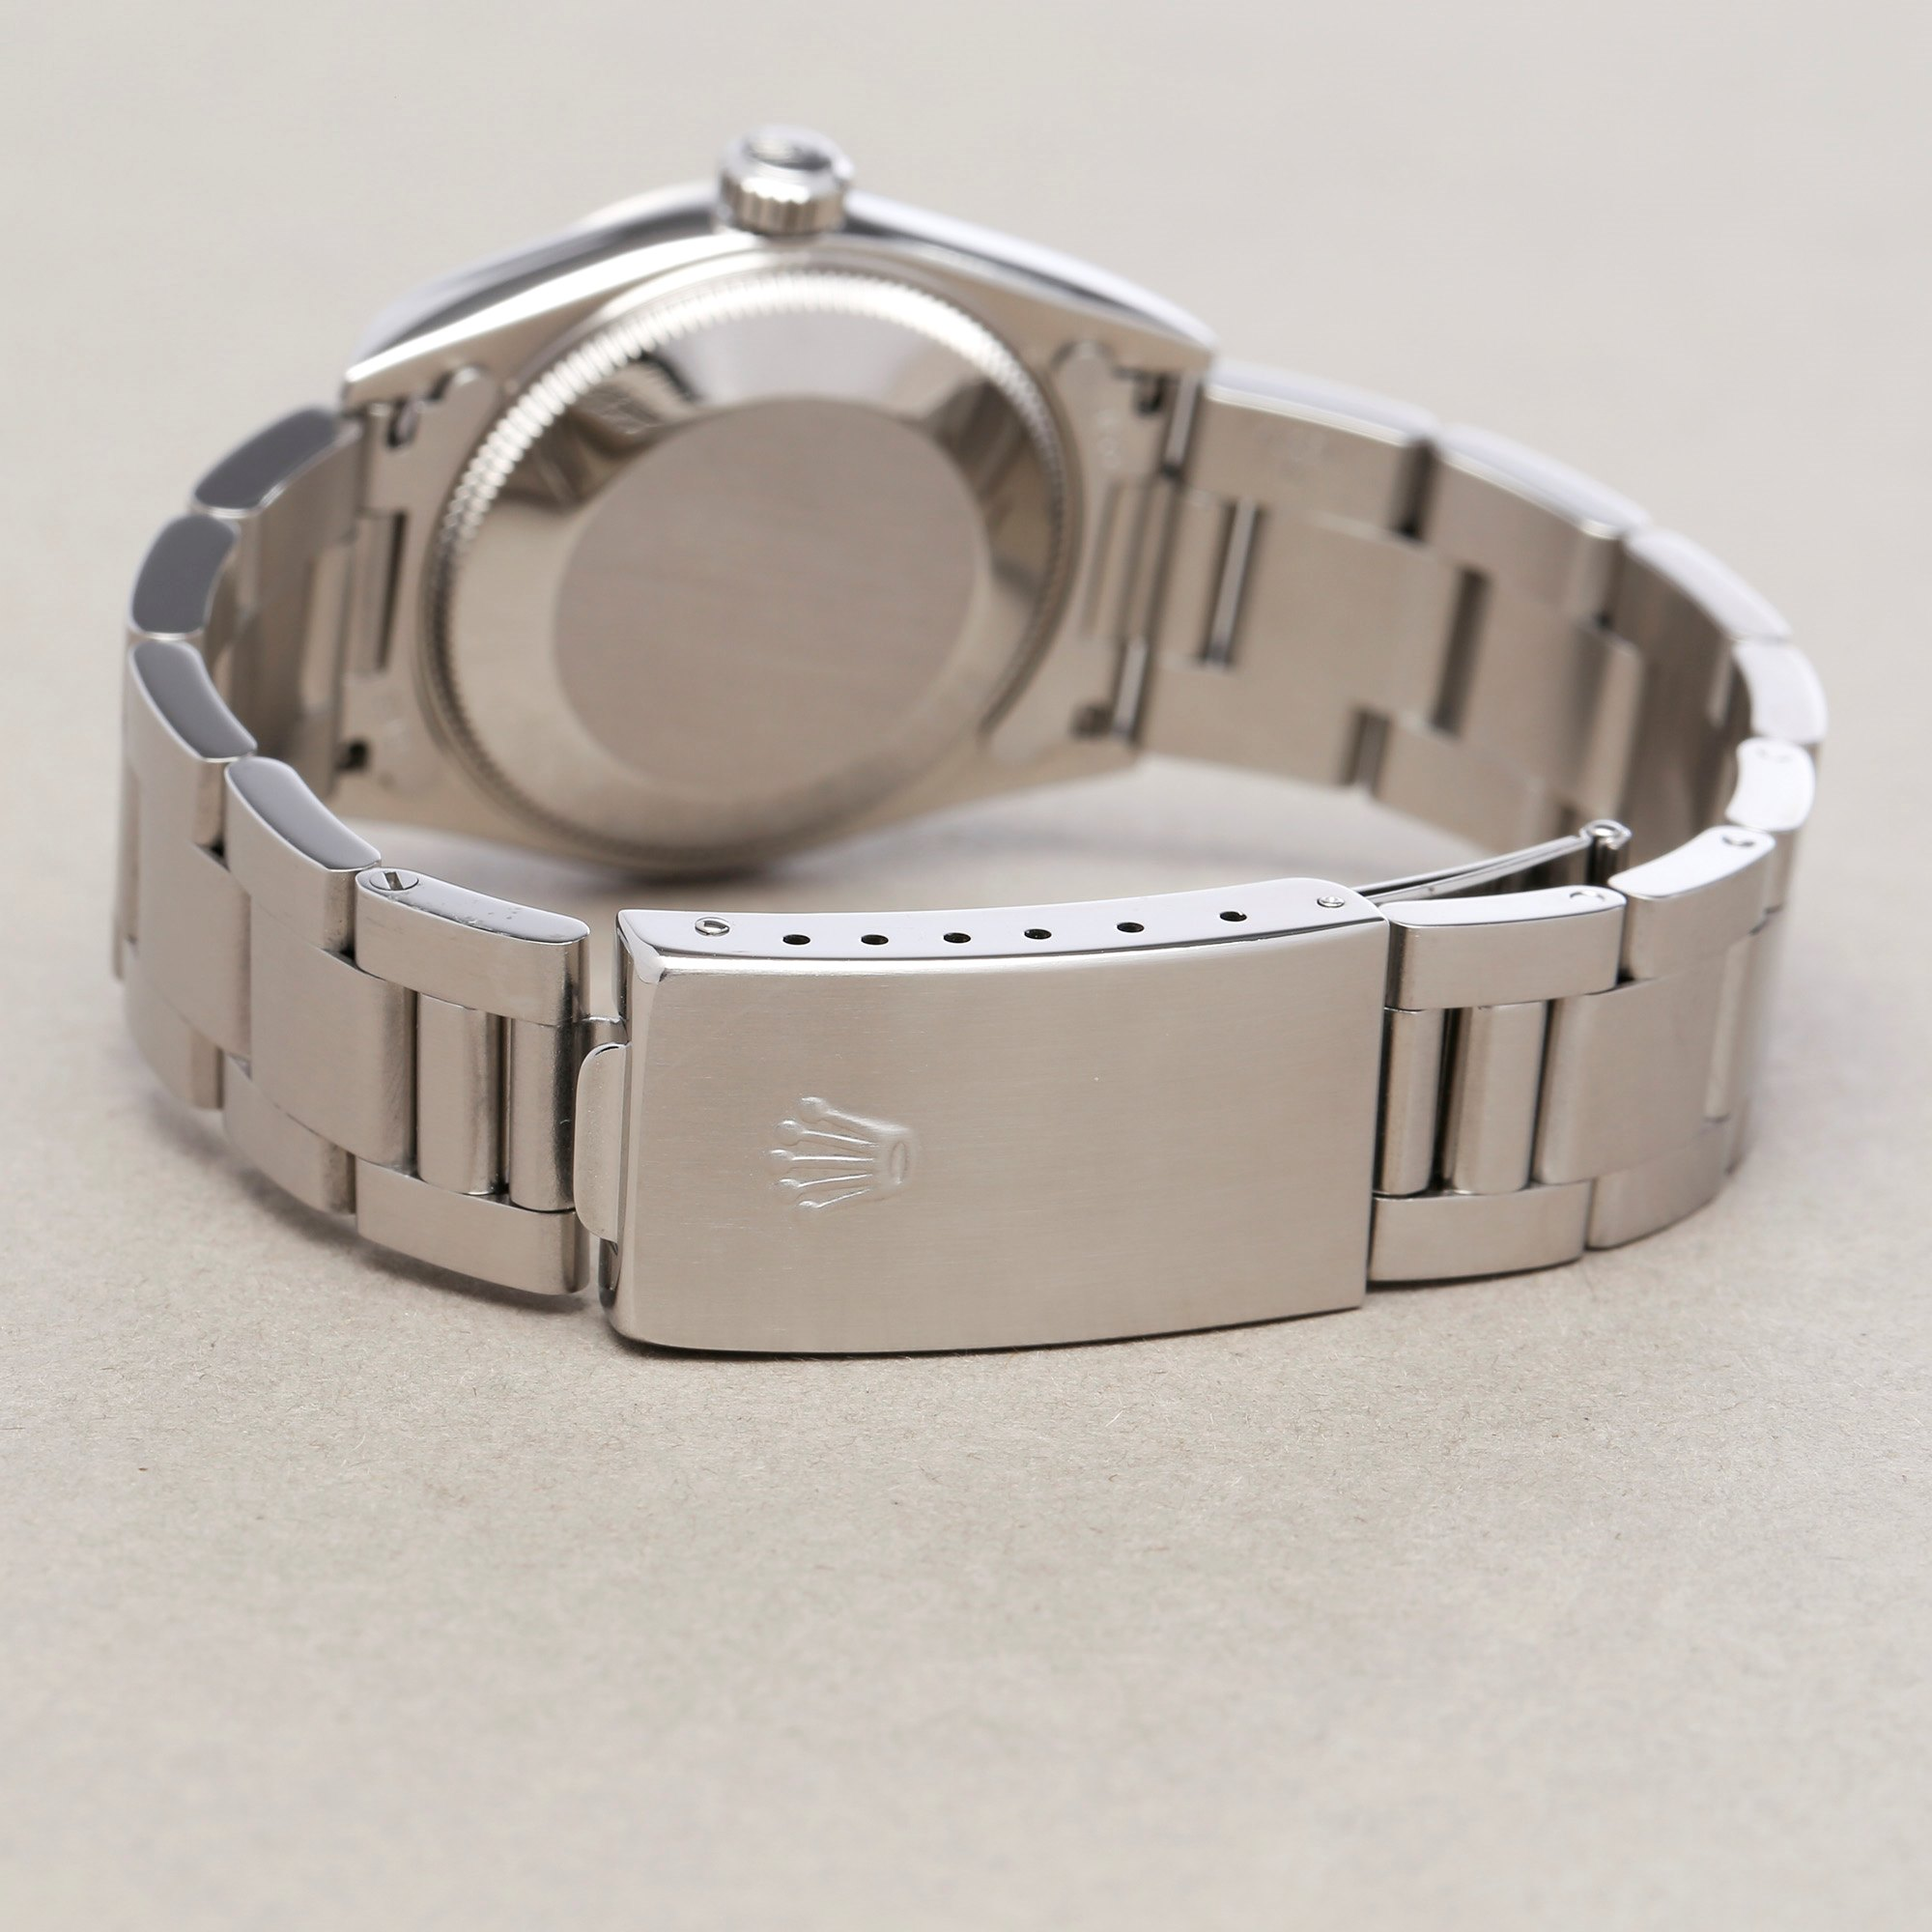 Rolex Datejust 31 78240 Ladies Stainless Steel Watch - Image 6 of 10